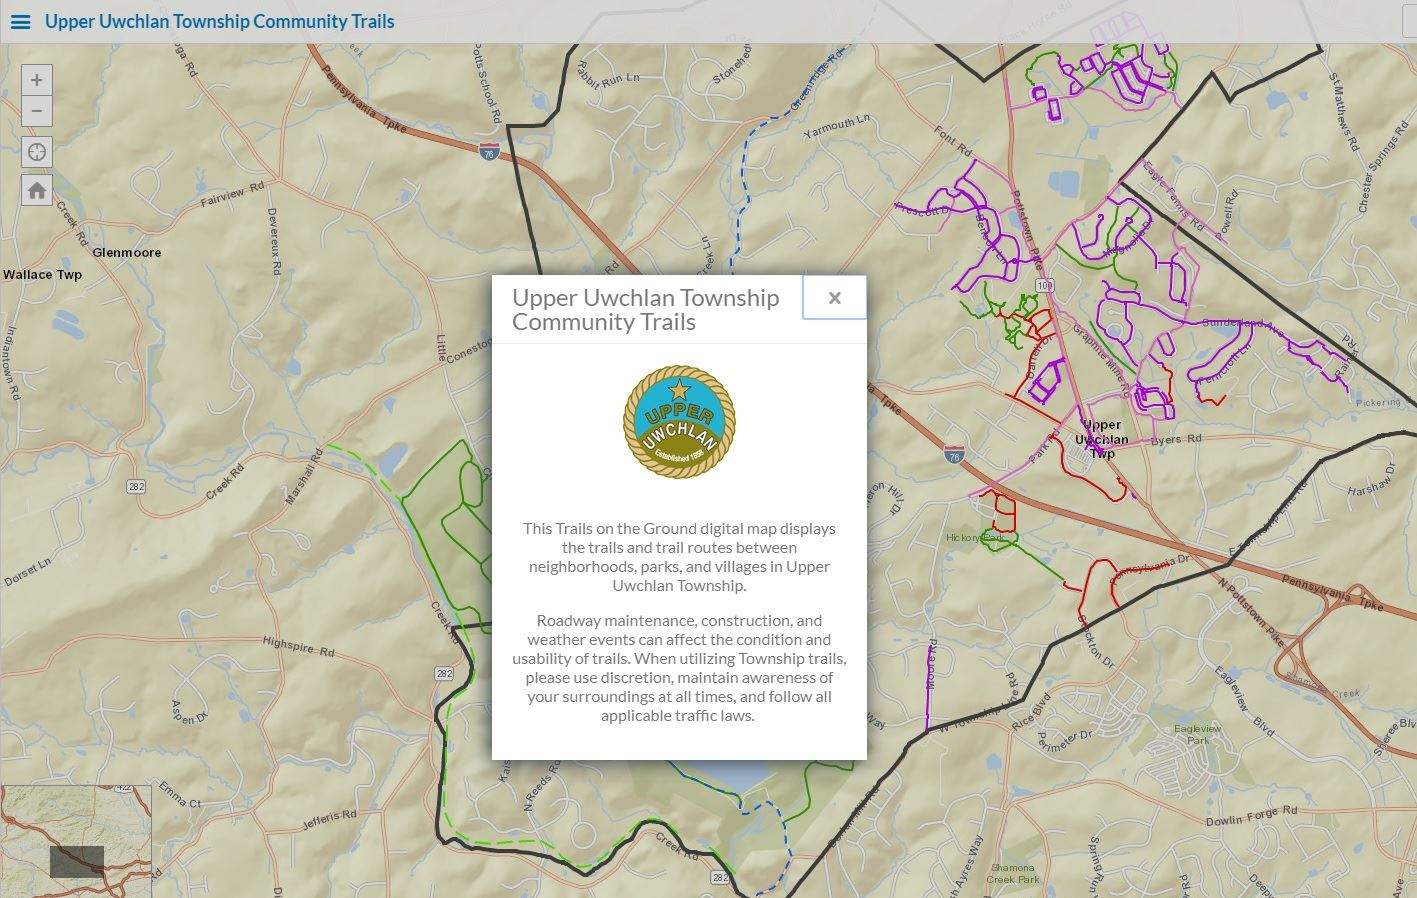 Click here to access a digital, interactive map of the Upper Uwchlan Community Trails Network